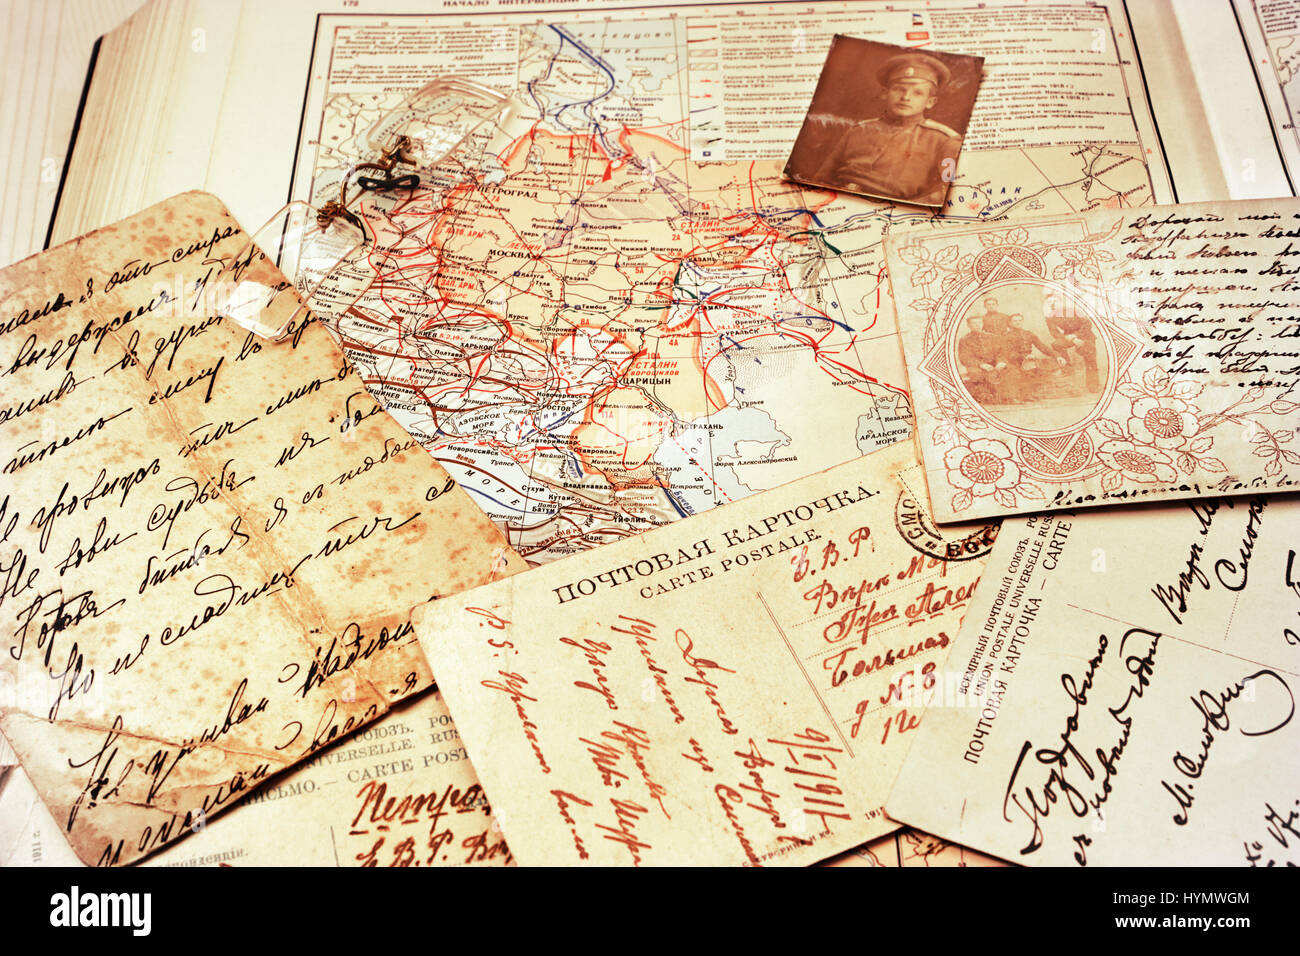 Postcards and a map of battles of